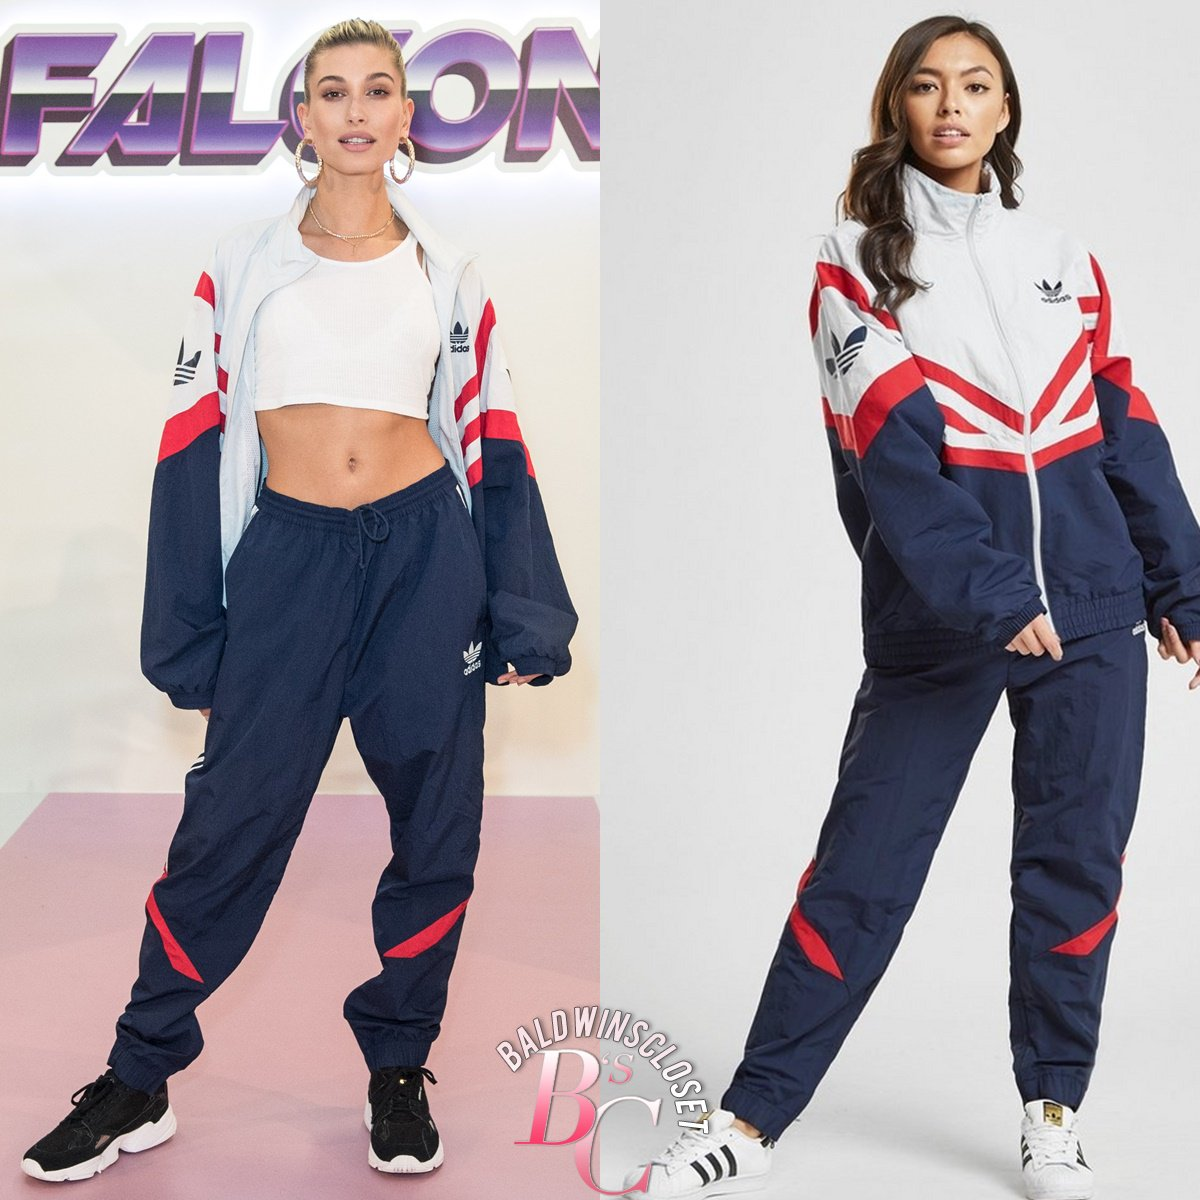 ace5c0f14 ... Top for $112.00 and a pair of #adidas Originals Sportivo Track Pants  for $81.00. These items are FINALLY available! ...